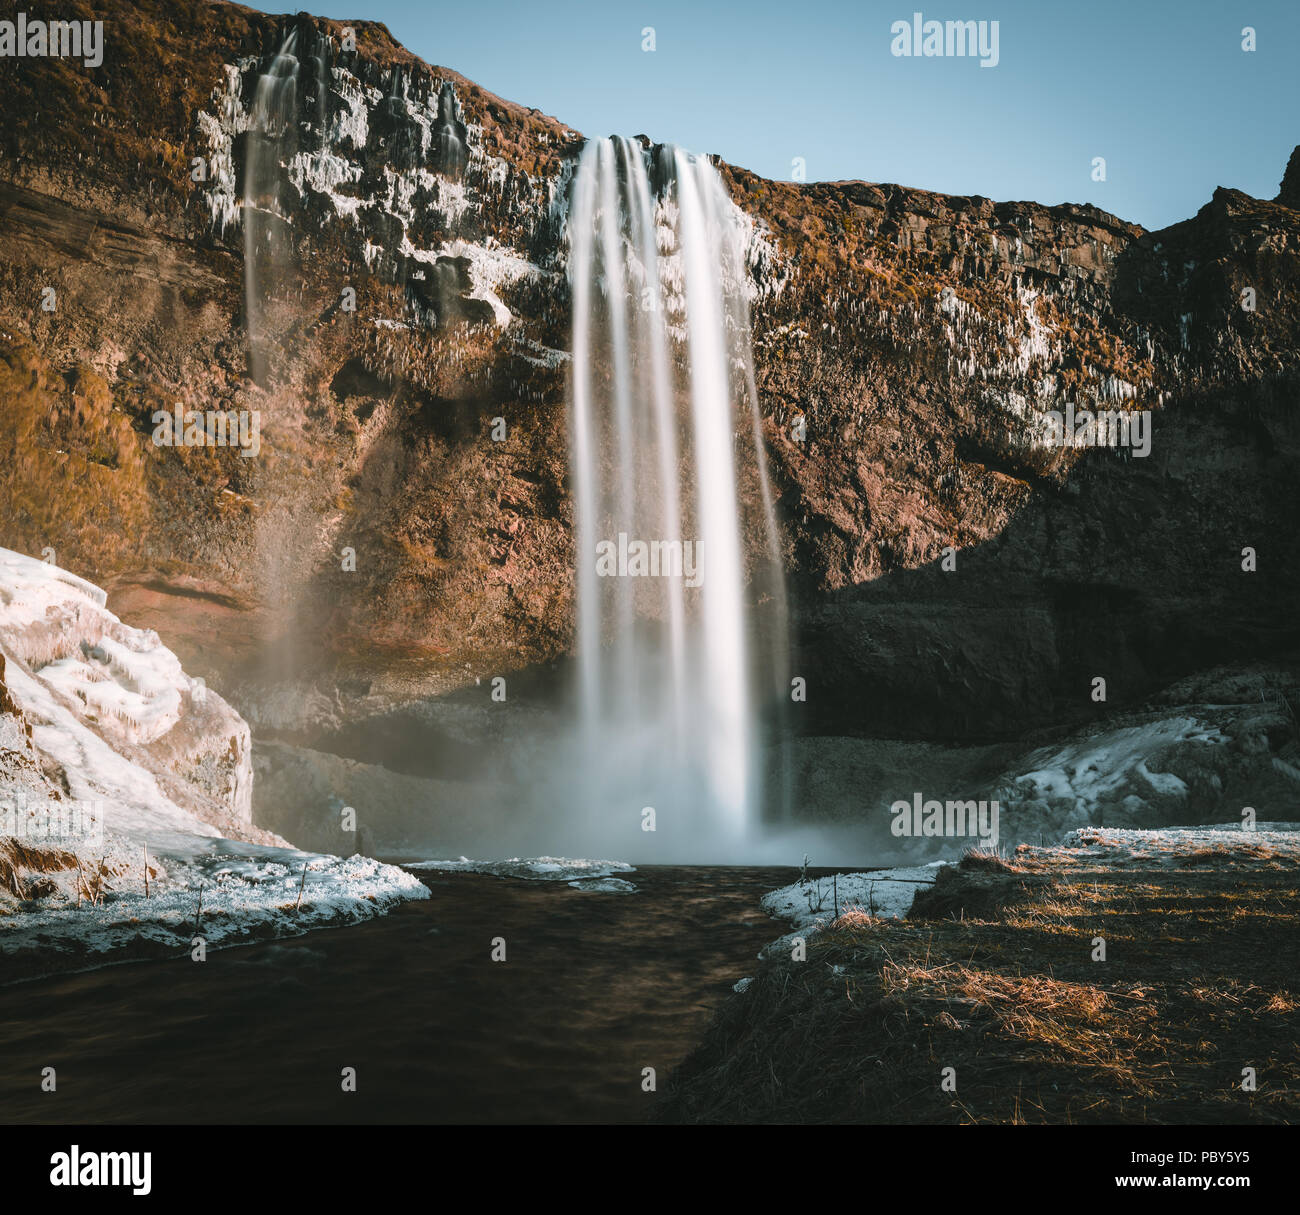 Wonderful landscape from Seljalandsfoss Waterfall in Iceland on a clear day with blue sky and snow. - Stock Image